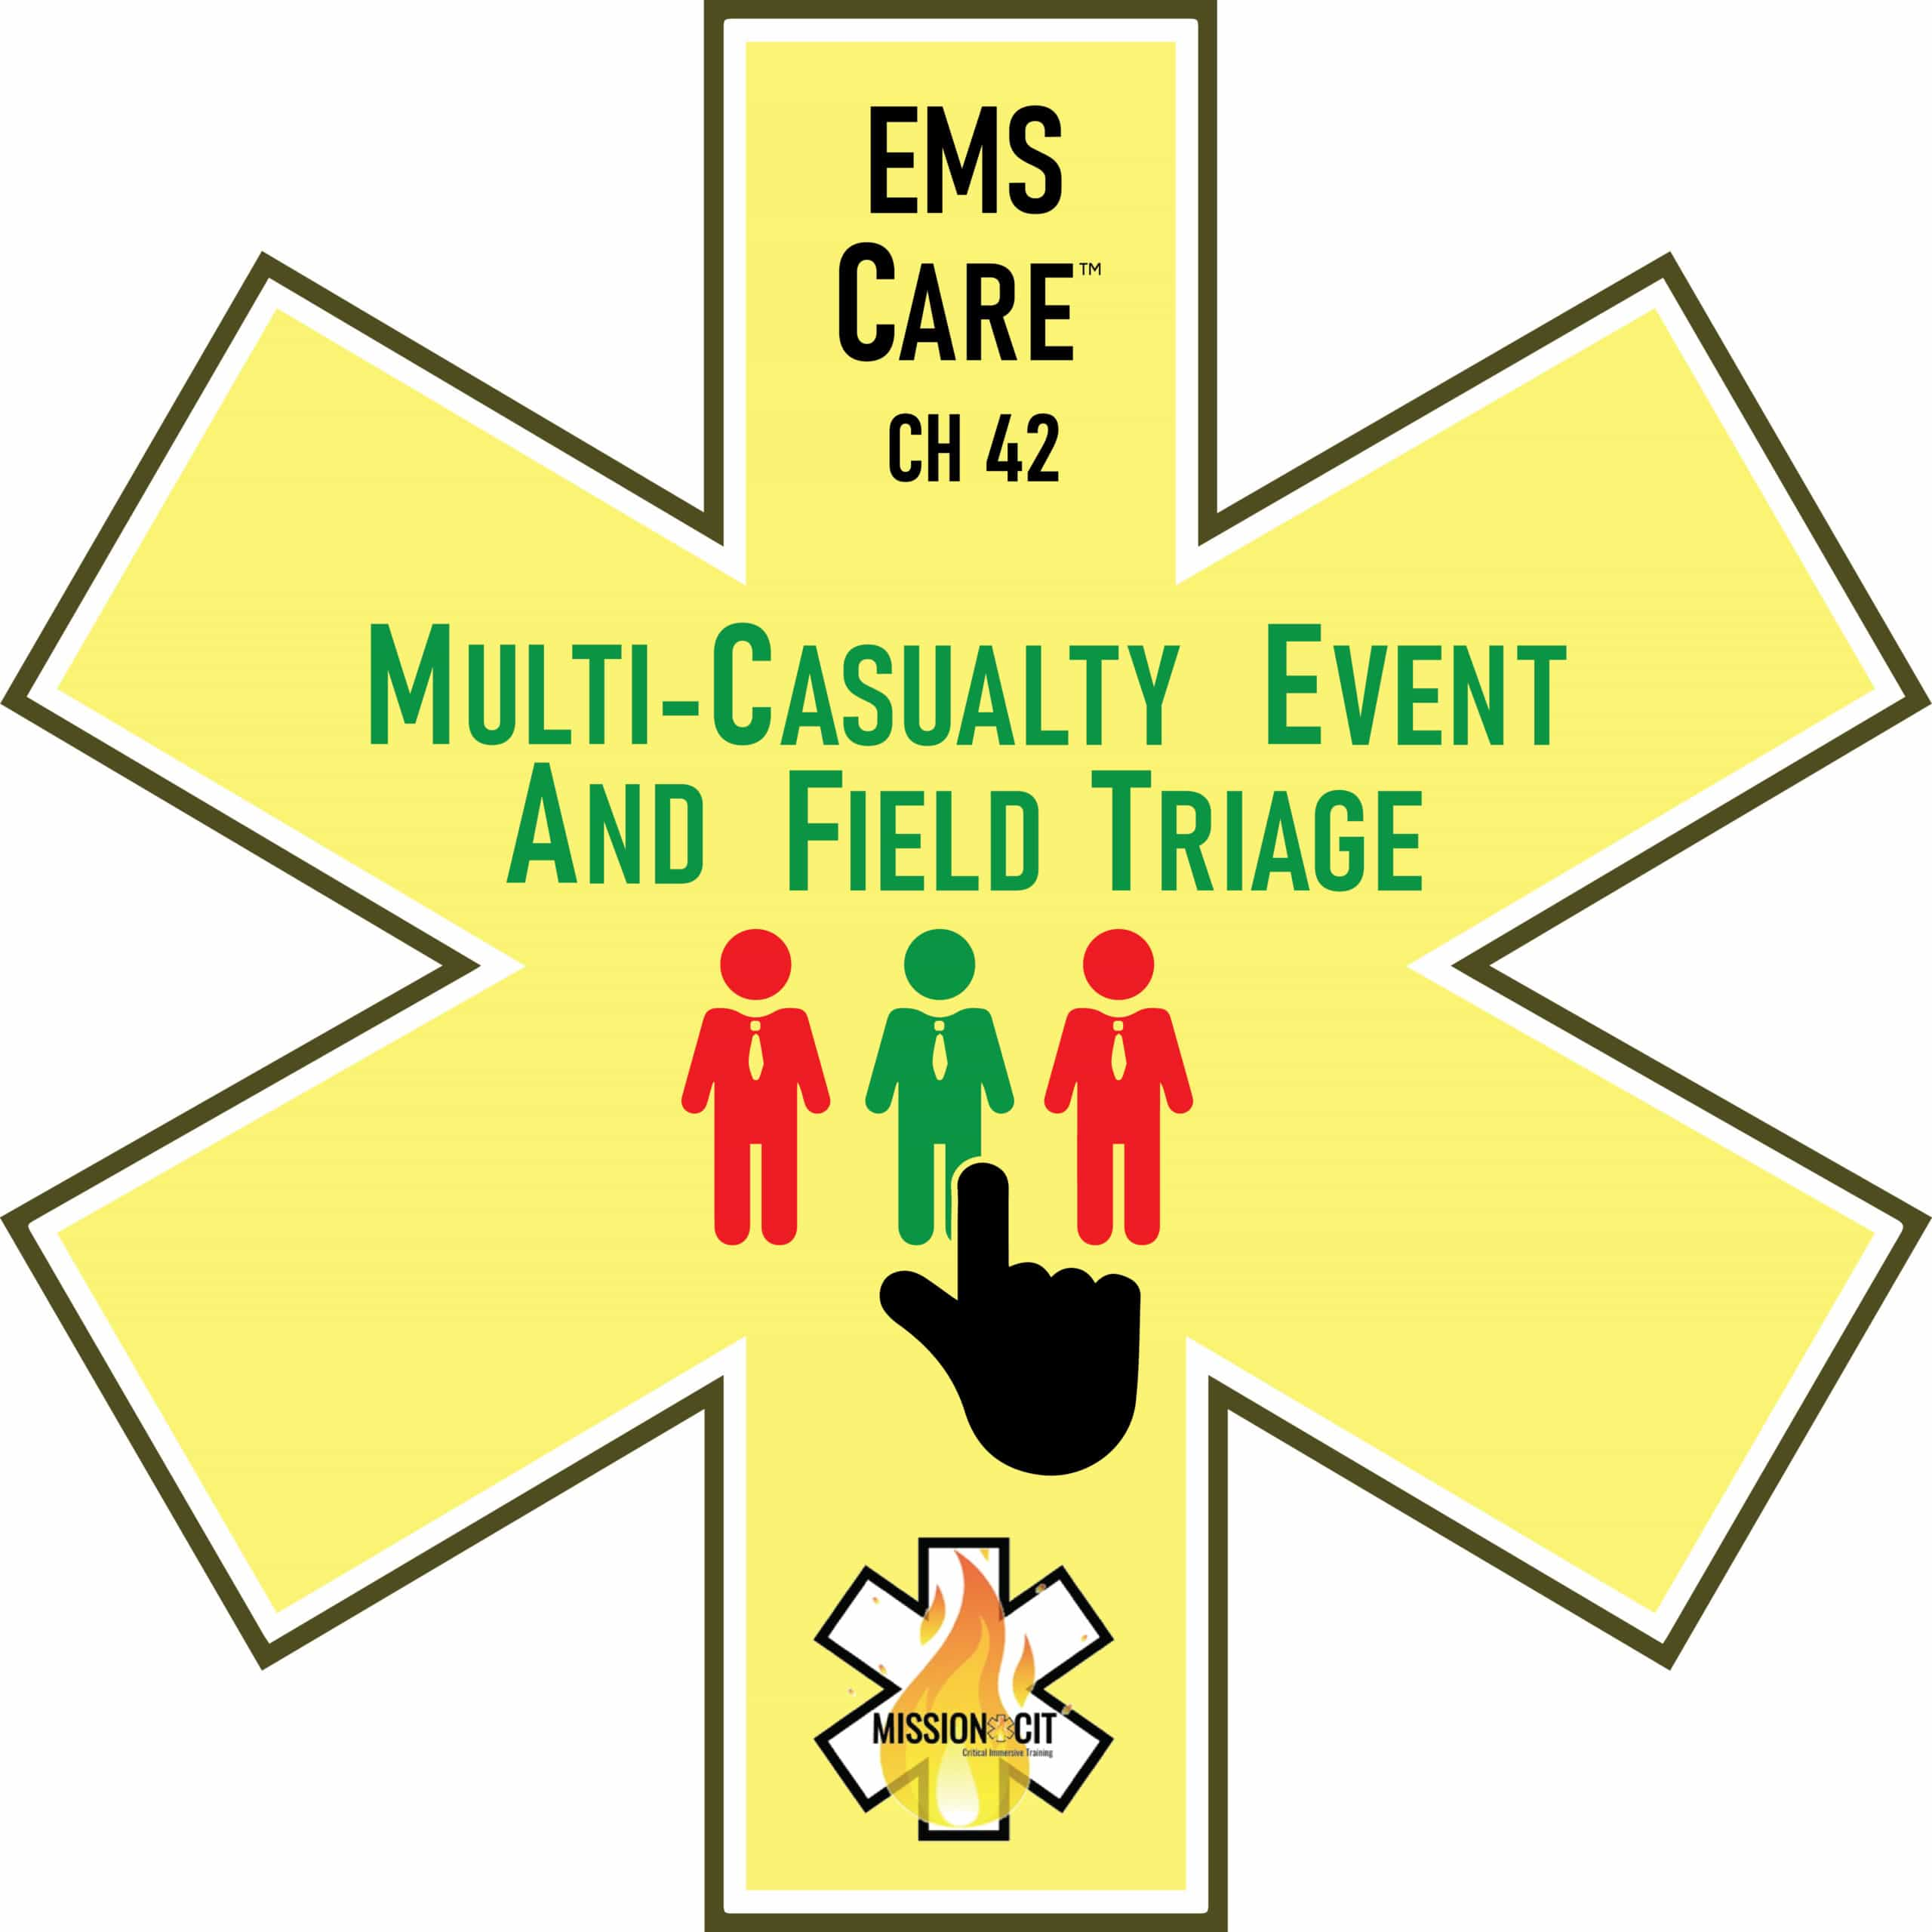 EMS Care Chapter 42 | Multi-Casualty Event and Field Triage